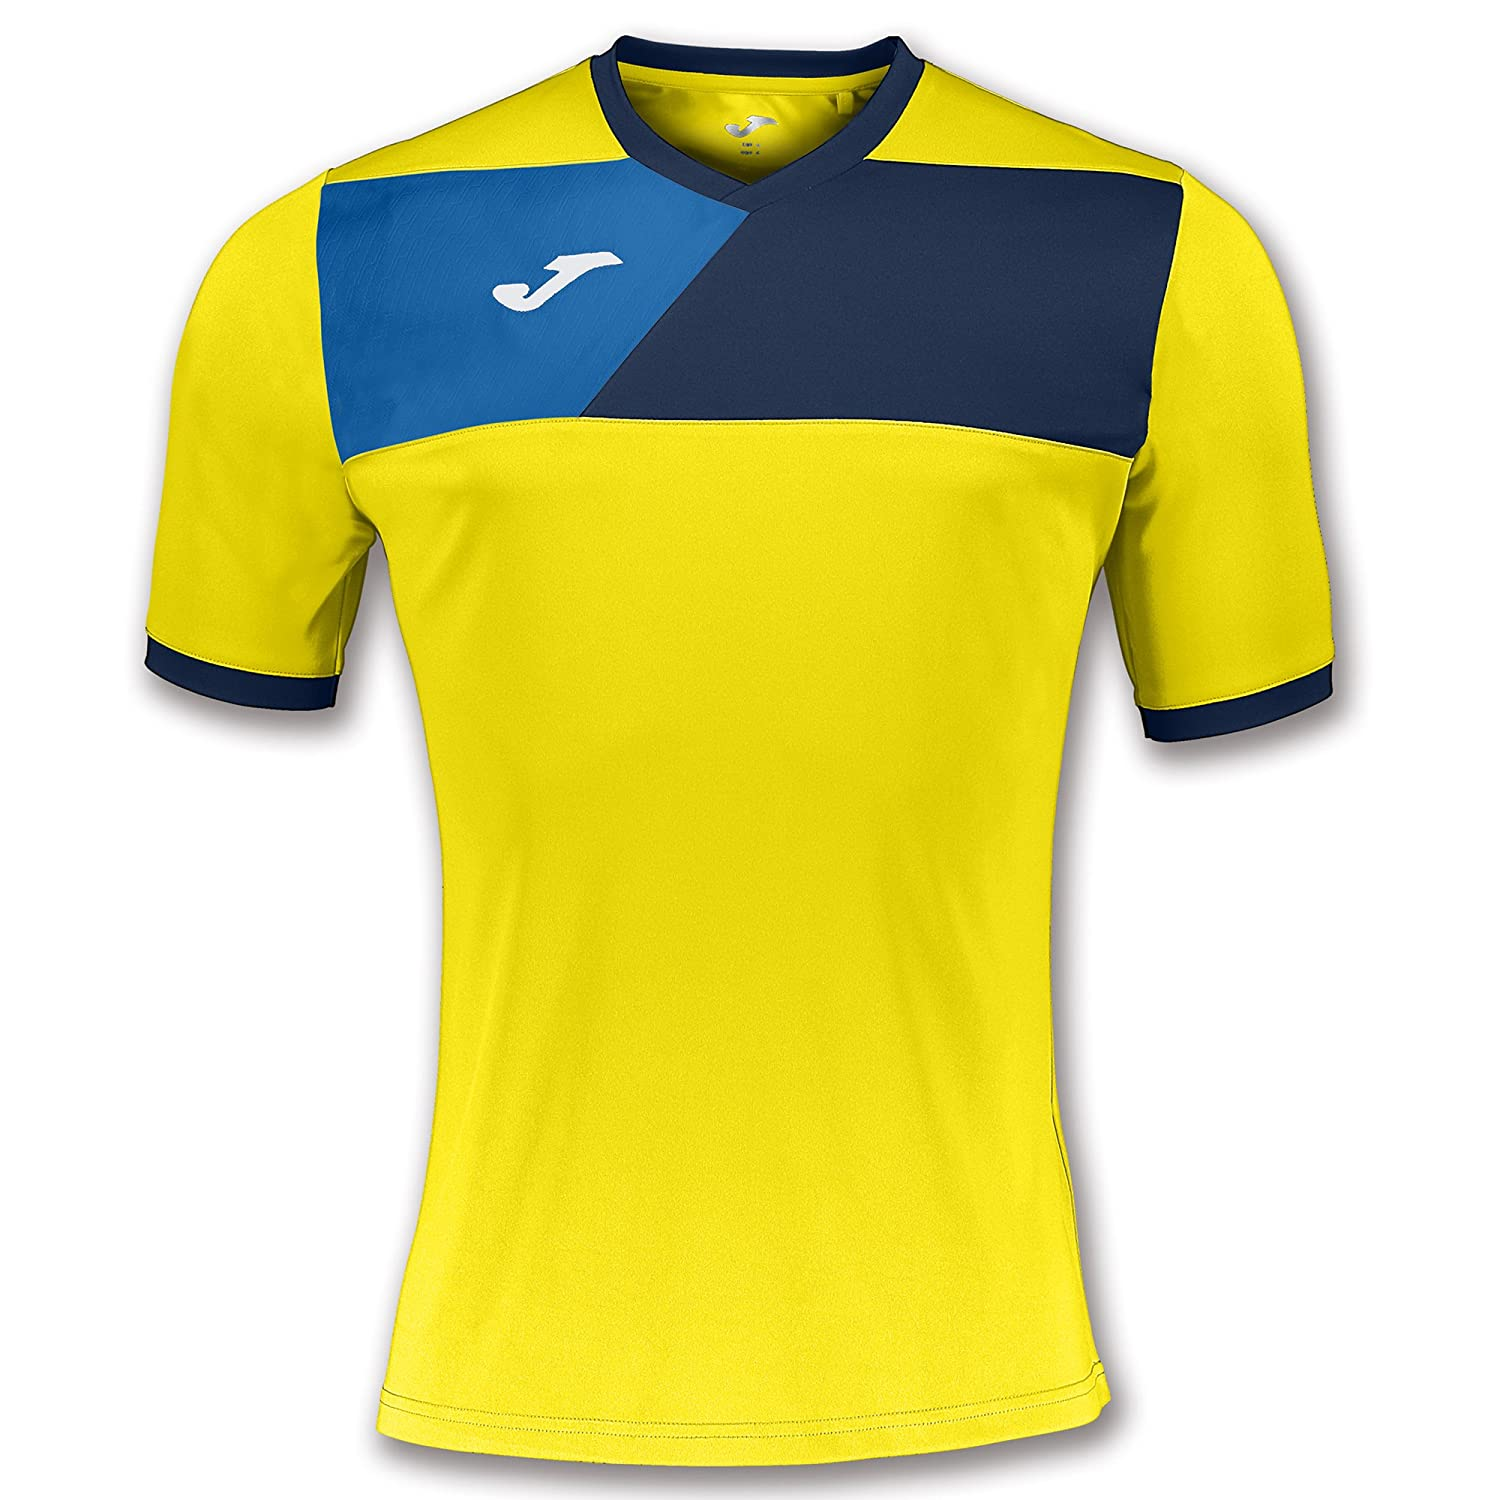 Amazon.com : Joma Teamwear T-Shirt Crew II Short Sleeves Yellow-Navy Uniforms CAMISETAS EQUIP : Sports & Outdoors